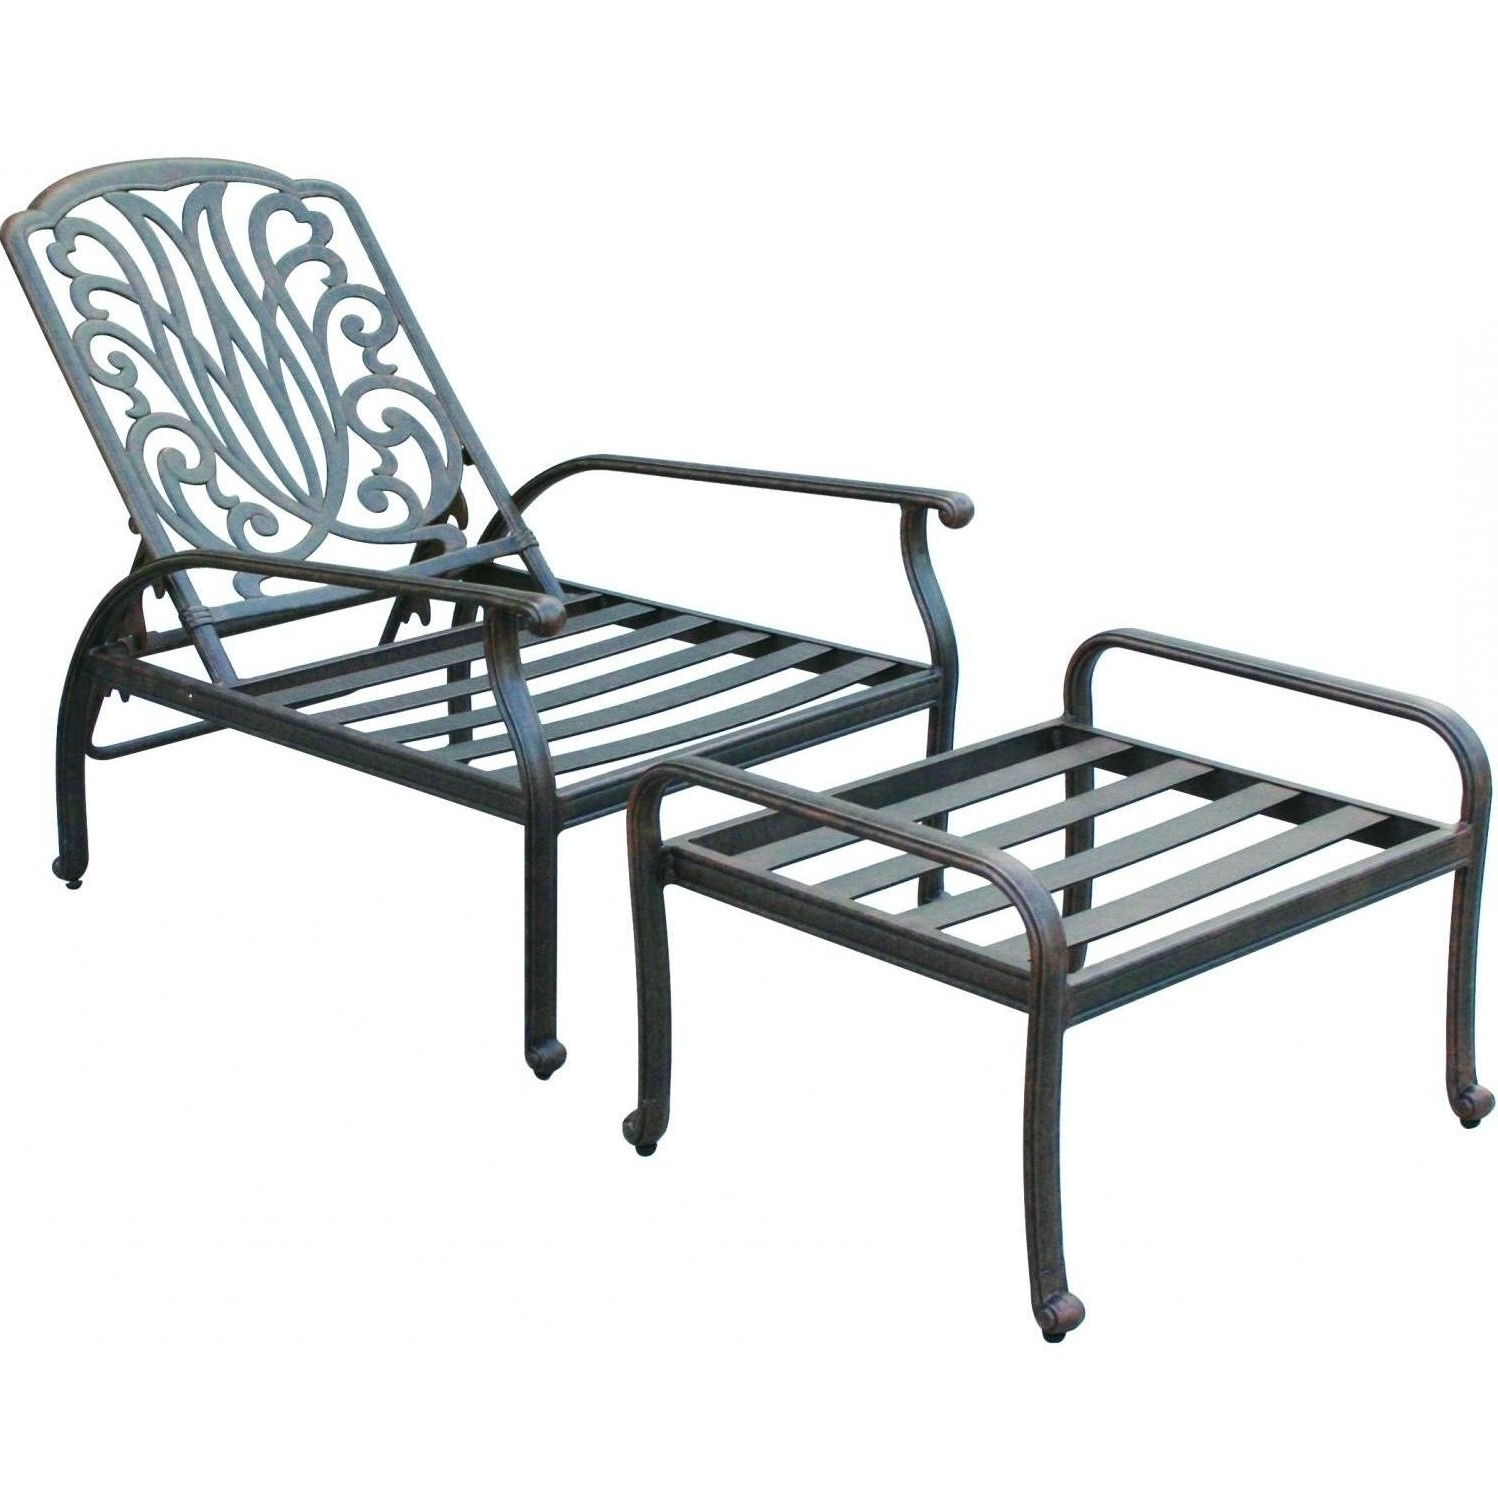 Fashionable Portable Outdoor Chaise Lounge Chairs Pertaining To Convertible Chair : Patio Lounge Chairs On Sale Buy Outdoor Lounge (View 12 of 15)